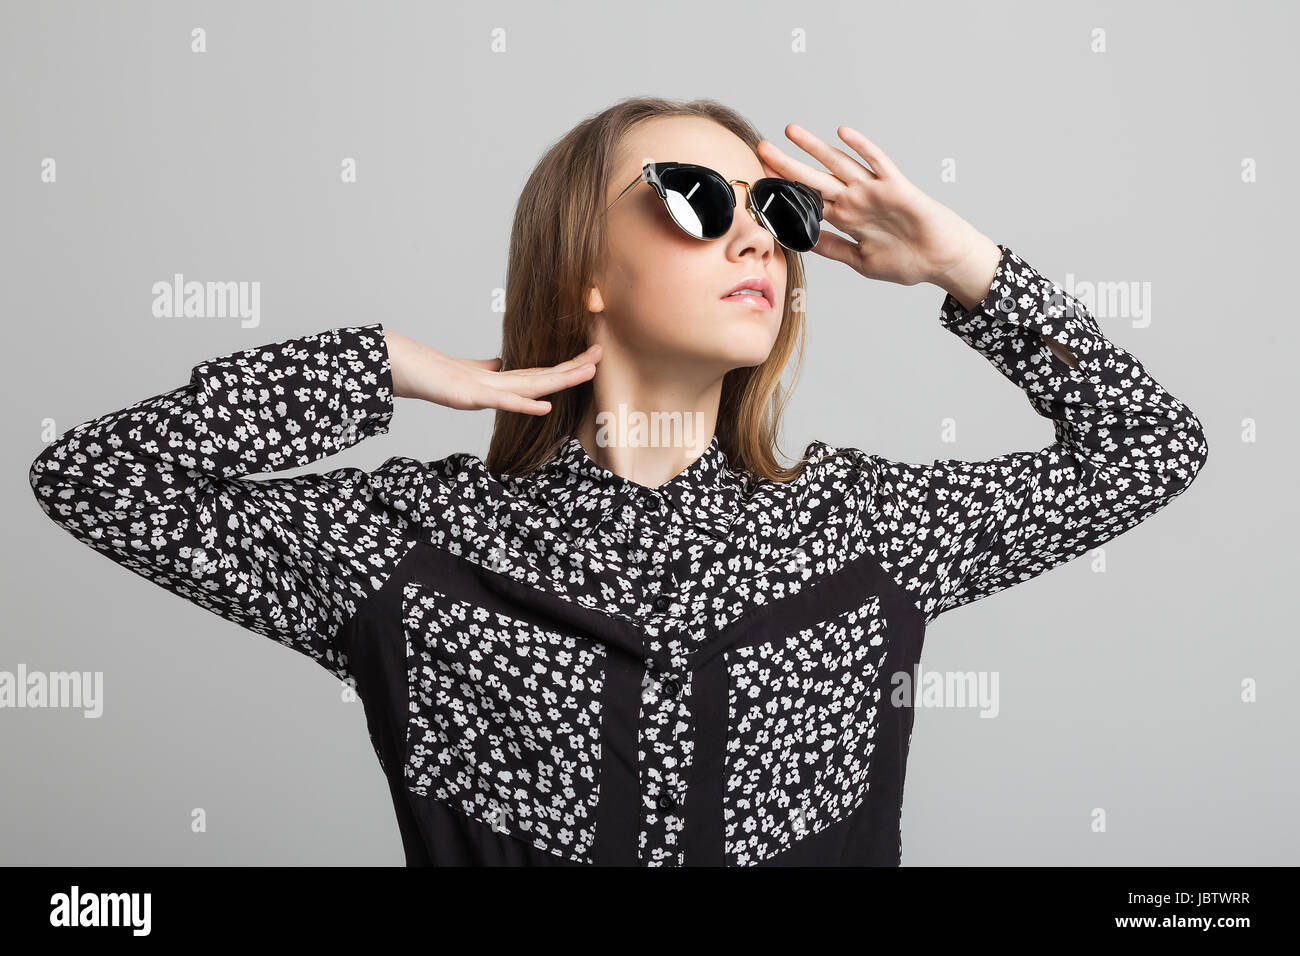 085cbefc787 Portrait of young pretty girl with black round sunglasses over gray  background. woman dressed in